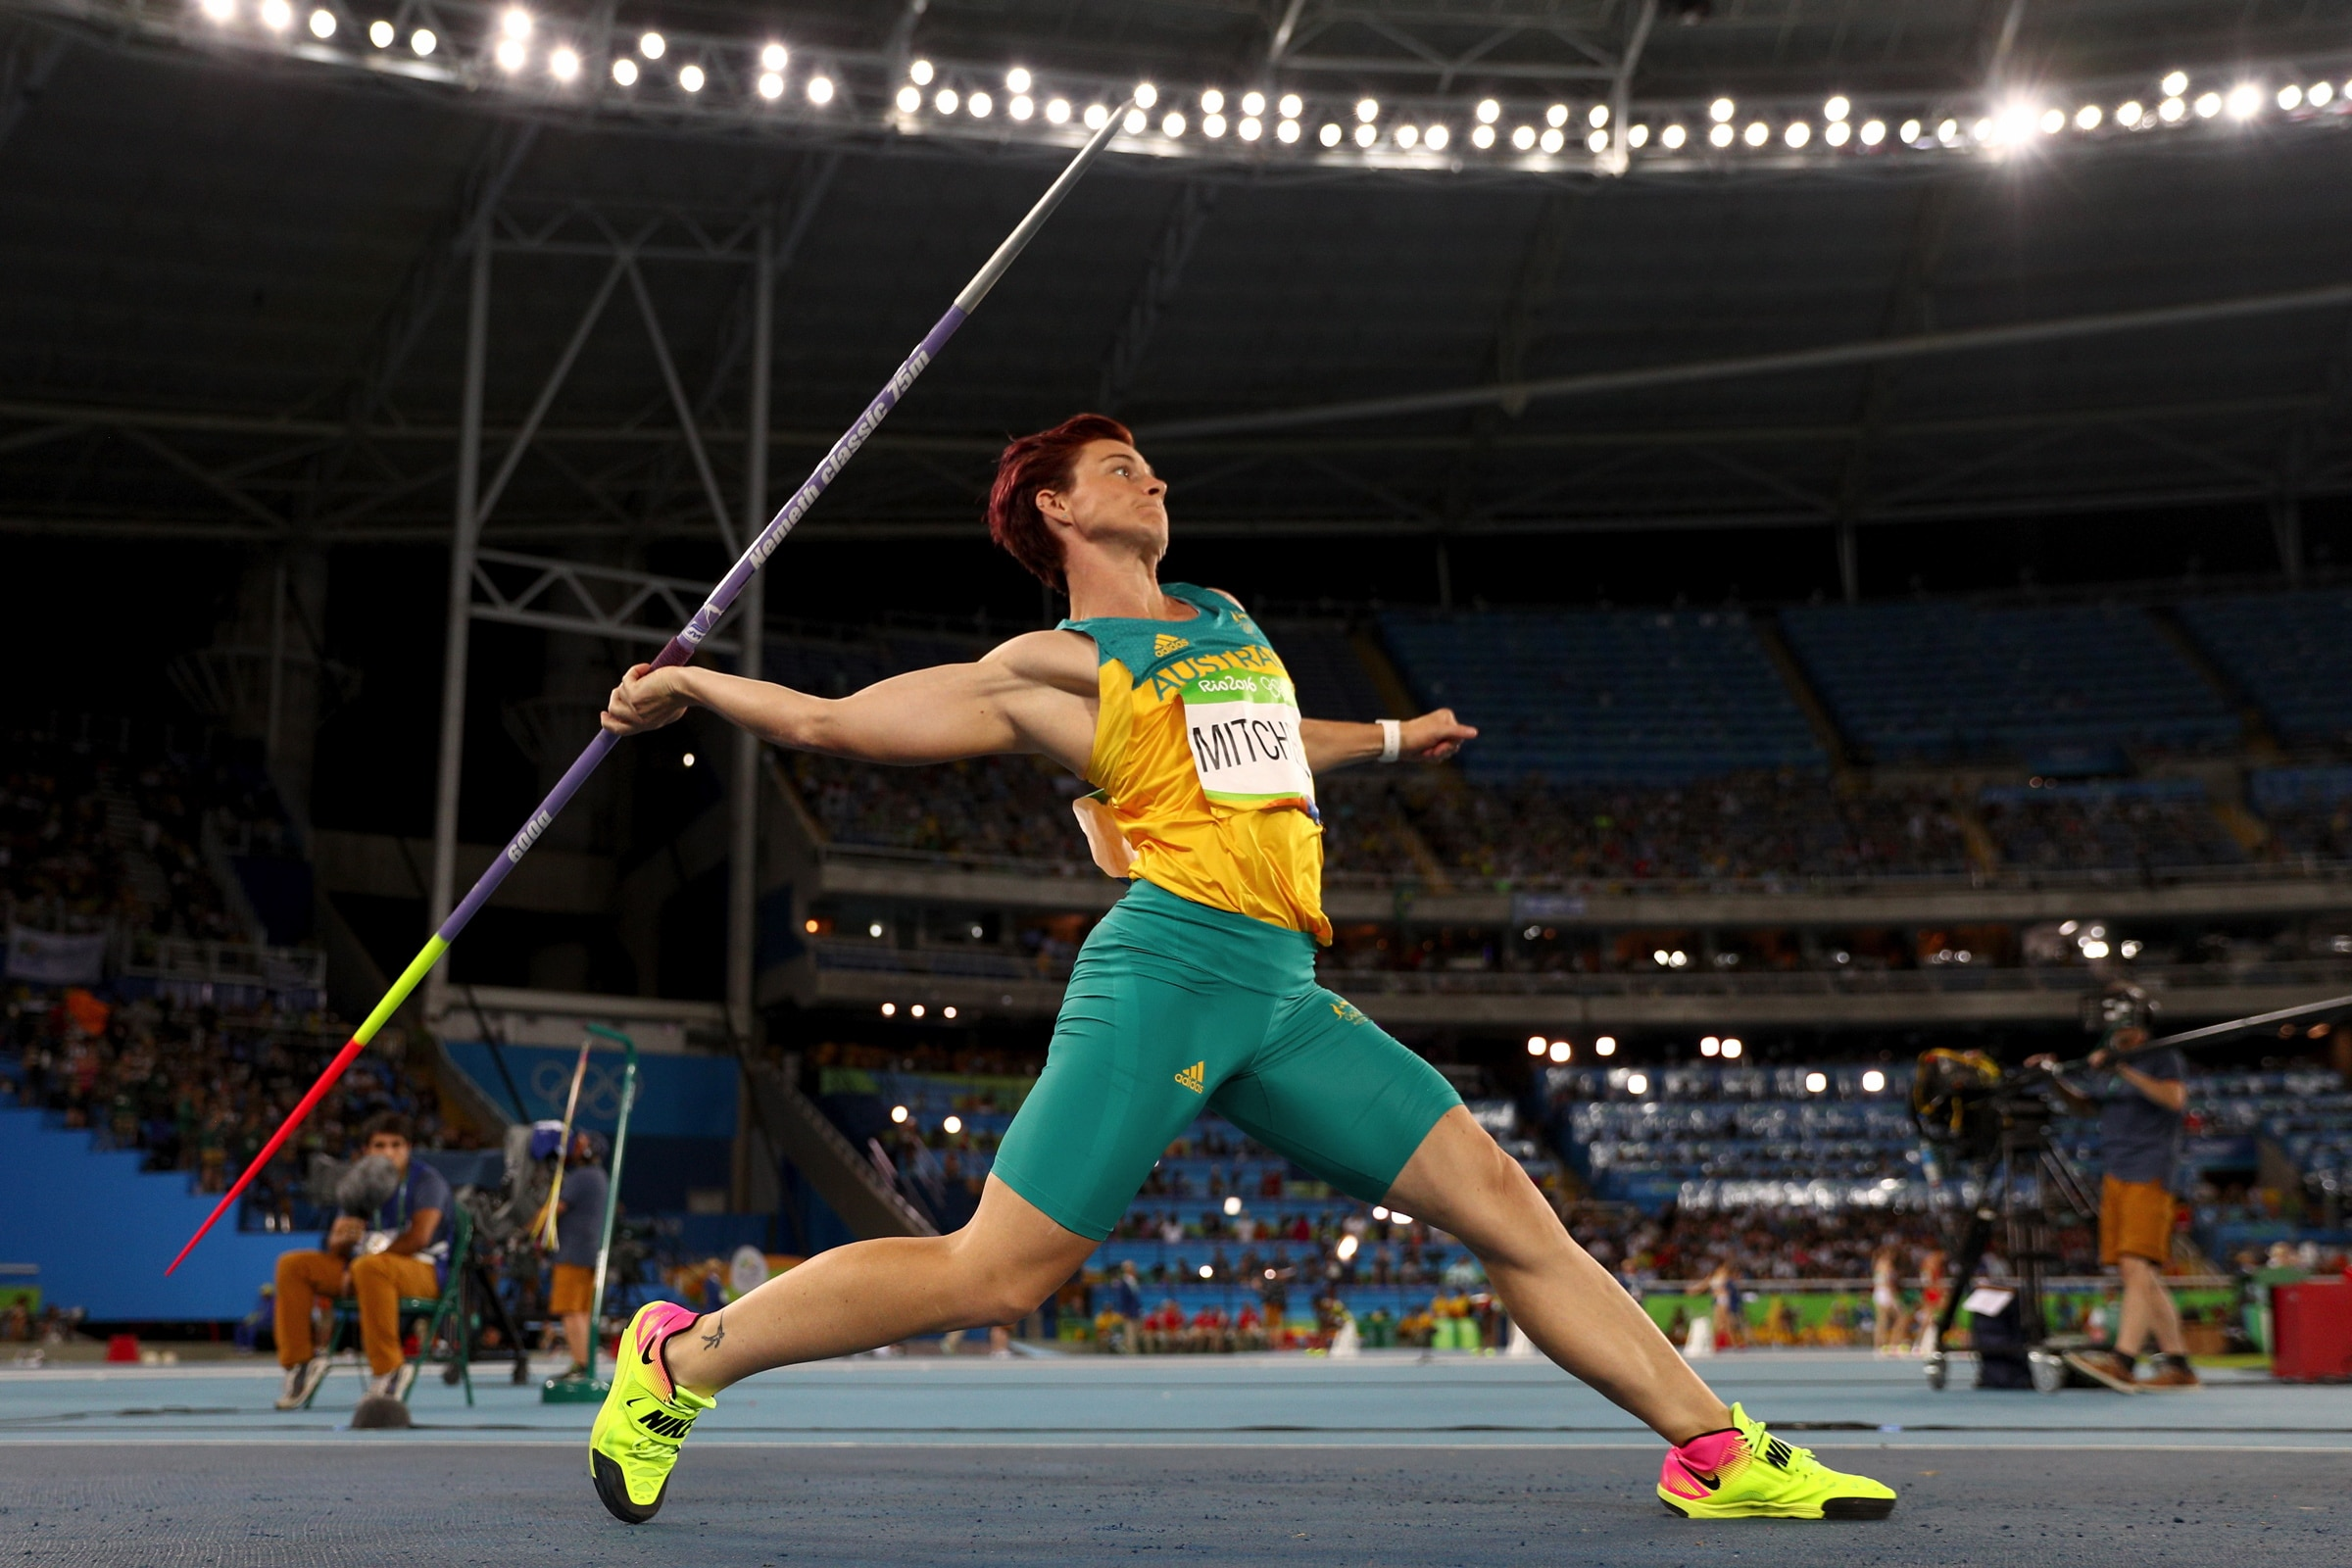 Athletics - Javelin Throw Women